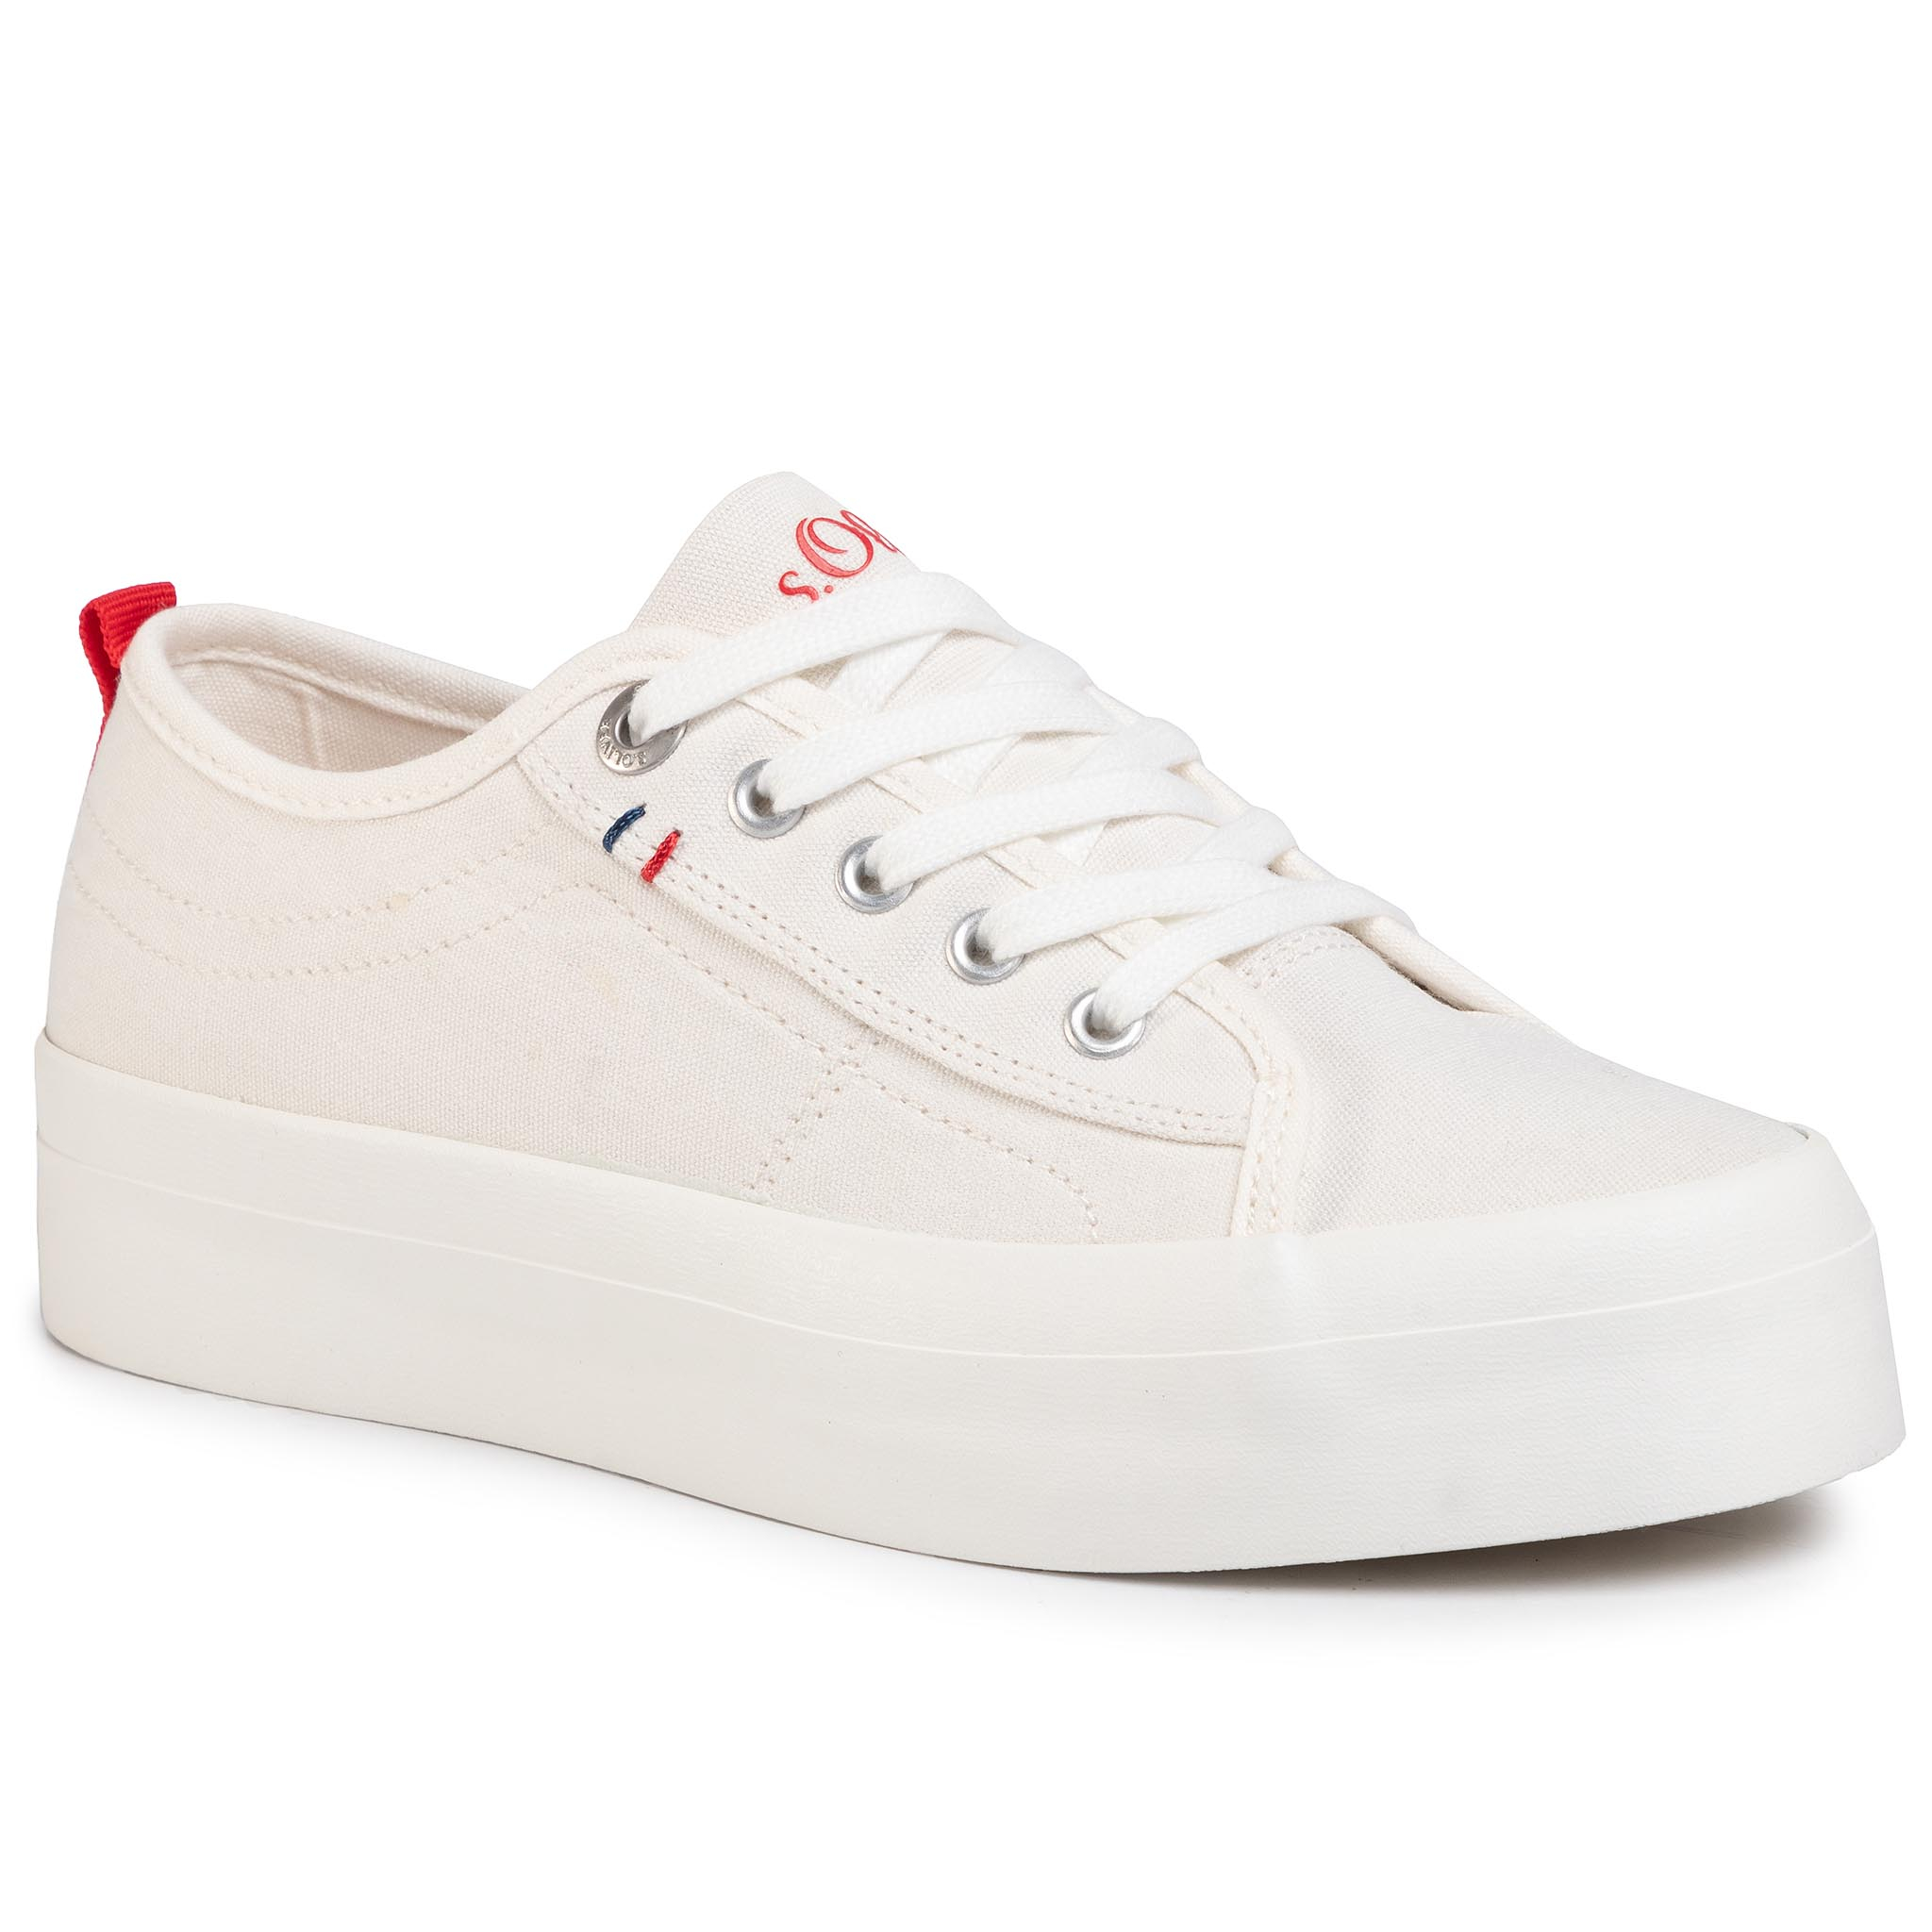 Sneakers S.OLIVER - 5-23678-24 White 100